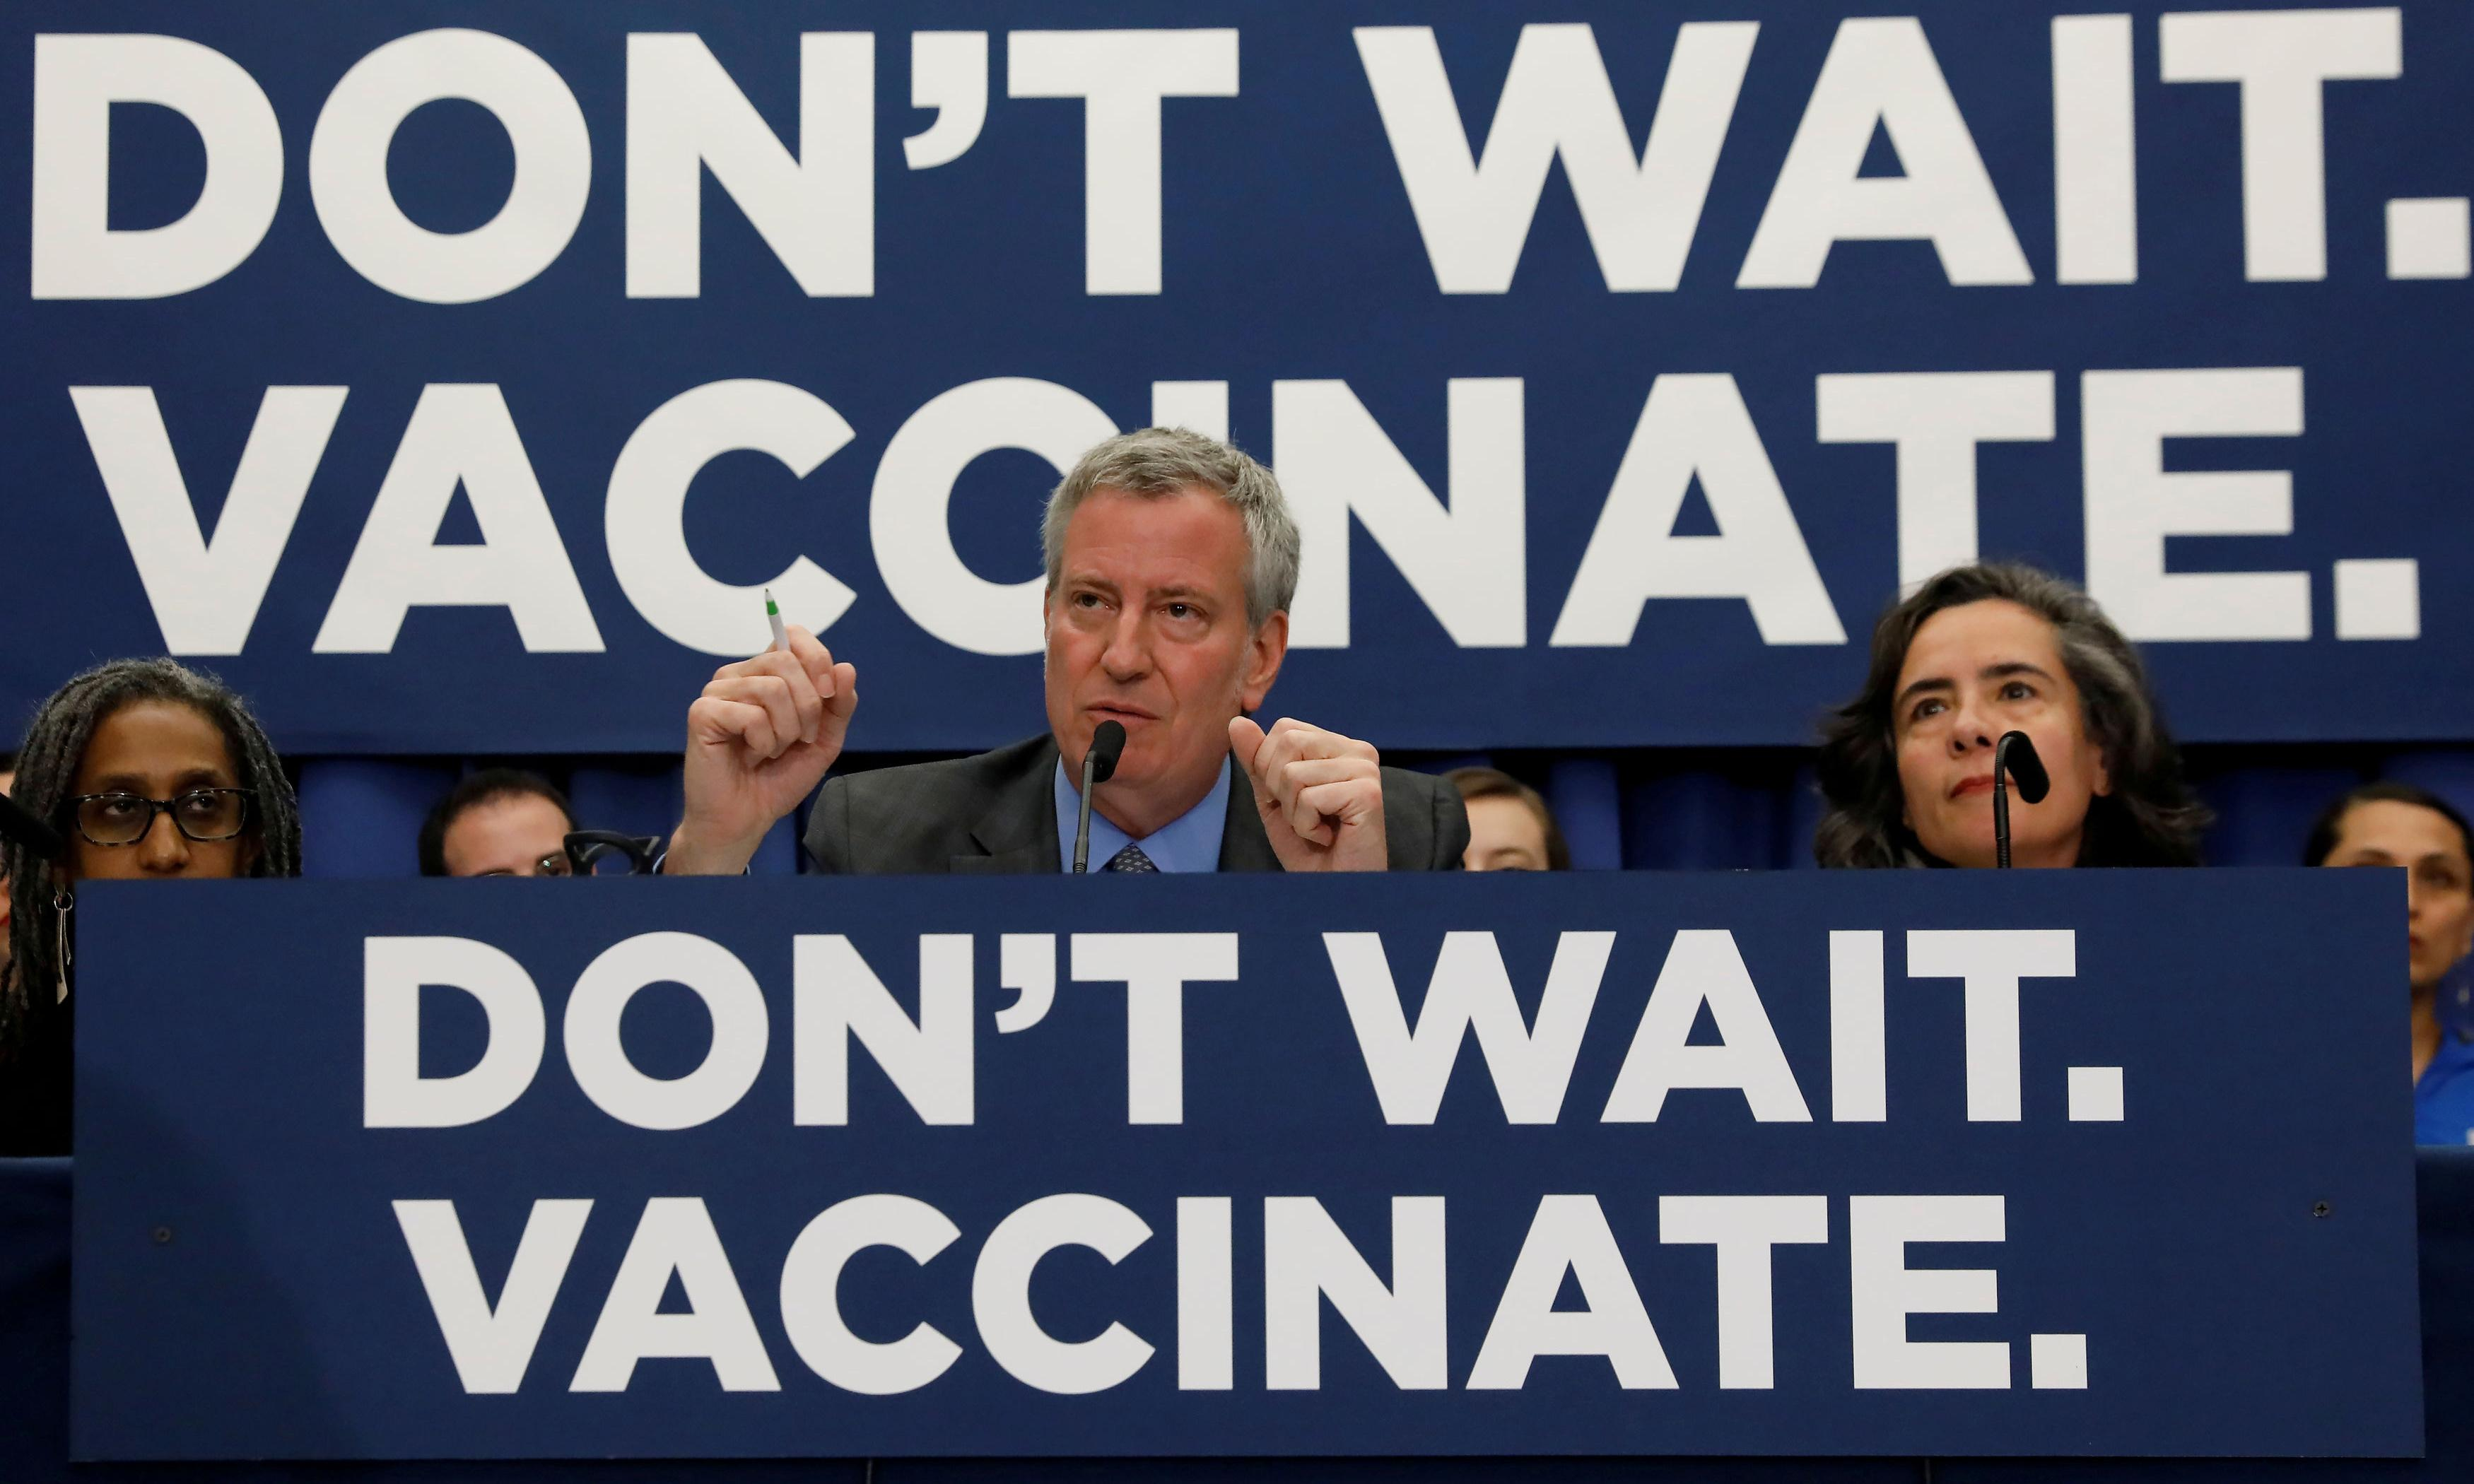 US records 33 new measles cases in a week in worst outbreak since 1992